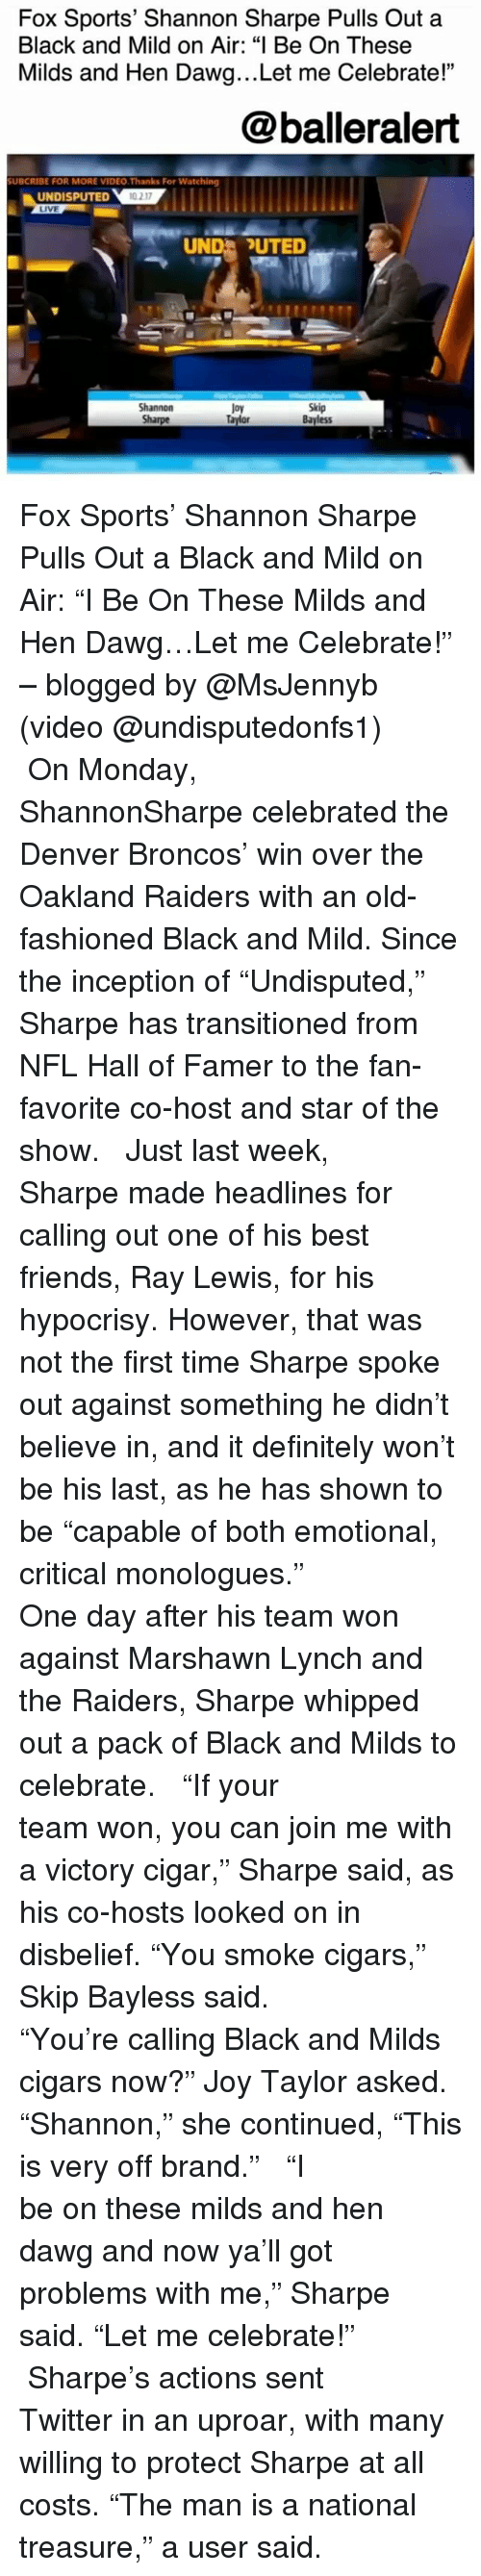 "Definitely, Denver Broncos, and Friends: Fox Sports' Shannon Sharpe Pulls Out a  Black and Mild on Air: ""I Be On These  Milds and Hen Dawg...Let me Celebrate!""  @balleralert  UBCRIBE FOR MORE VIDEO.Thanks For Watching  UNDISPUTED  LIVE  0 217  UND UTED  Shannon  Sharpe  Joy  Taylor  Skip  Bayless Fox Sports' Shannon Sharpe Pulls Out a Black and Mild on Air: ""I Be On These Milds and Hen Dawg…Let me Celebrate!"" – blogged by @MsJennyb (video @undisputedonfs1) ⠀⠀⠀⠀⠀⠀⠀ ⠀⠀⠀⠀⠀⠀⠀ On Monday, ShannonSharpe celebrated the Denver Broncos' win over the Oakland Raiders with an old-fashioned Black and Mild. Since the inception of ""Undisputed,"" Sharpe has transitioned from NFL Hall of Famer to the fan-favorite co-host and star of the show. ⠀⠀⠀⠀⠀⠀⠀ ⠀⠀⠀⠀⠀⠀⠀ Just last week, Sharpe made headlines for calling out one of his best friends, Ray Lewis, for his hypocrisy. However, that was not the first time Sharpe spoke out against something he didn't believe in, and it definitely won't be his last, as he has shown to be ""capable of both emotional, critical monologues."" ⠀⠀⠀⠀⠀⠀⠀ ⠀⠀⠀⠀⠀⠀⠀ One day after his team won against Marshawn Lynch and the Raiders, Sharpe whipped out a pack of Black and Milds to celebrate. ⠀⠀⠀⠀⠀⠀⠀ ⠀⠀⠀⠀⠀⠀⠀ ""If your team won, you can join me with a victory cigar,"" Sharpe said, as his co-hosts looked on in disbelief. ""You smoke cigars,"" Skip Bayless said. ⠀⠀⠀⠀⠀⠀⠀ ⠀⠀⠀⠀⠀⠀⠀ ""You're calling Black and Milds cigars now?"" Joy Taylor asked. ""Shannon,"" she continued, ""This is very off brand."" ⠀⠀⠀⠀⠀⠀⠀ ⠀⠀⠀⠀⠀⠀⠀ ""I be on these milds and hen dawg and now ya'll got problems with me,"" Sharpe said. ""Let me celebrate!"" ⠀⠀⠀⠀⠀⠀⠀ ⠀⠀⠀⠀⠀⠀⠀ Sharpe's actions sent Twitter in an uproar, with many willing to protect Sharpe at all costs. ""The man is a national treasure,"" a user said."